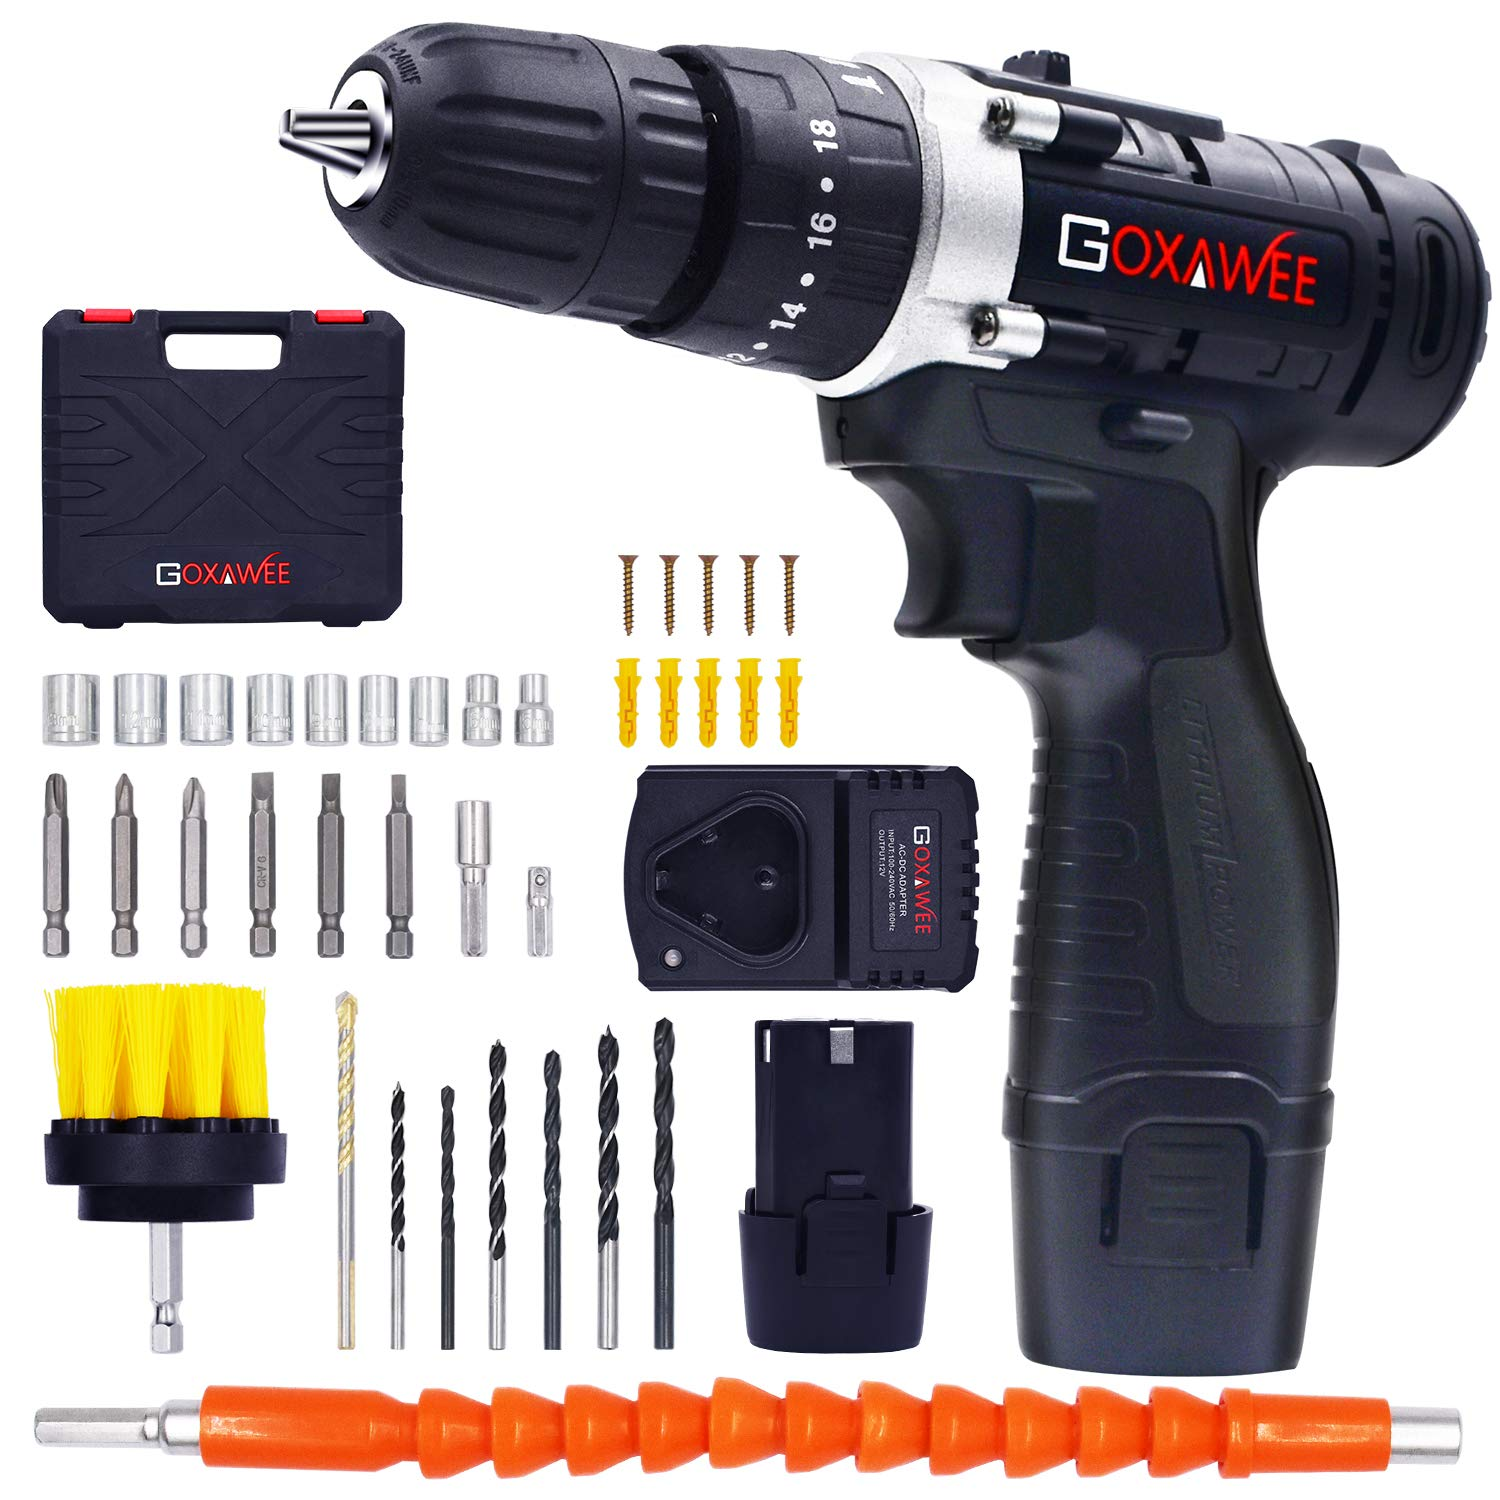 "GOXAWEE Cordless Drill Kit with 2Pcs Batteries, 2-Speed 3/8"" Keyless Chuck Electric Screwdriver with Hammer Function, Compact Home Drill Set with 265In-lbs, 18+3 Position, LED, 100pcs Accessories"